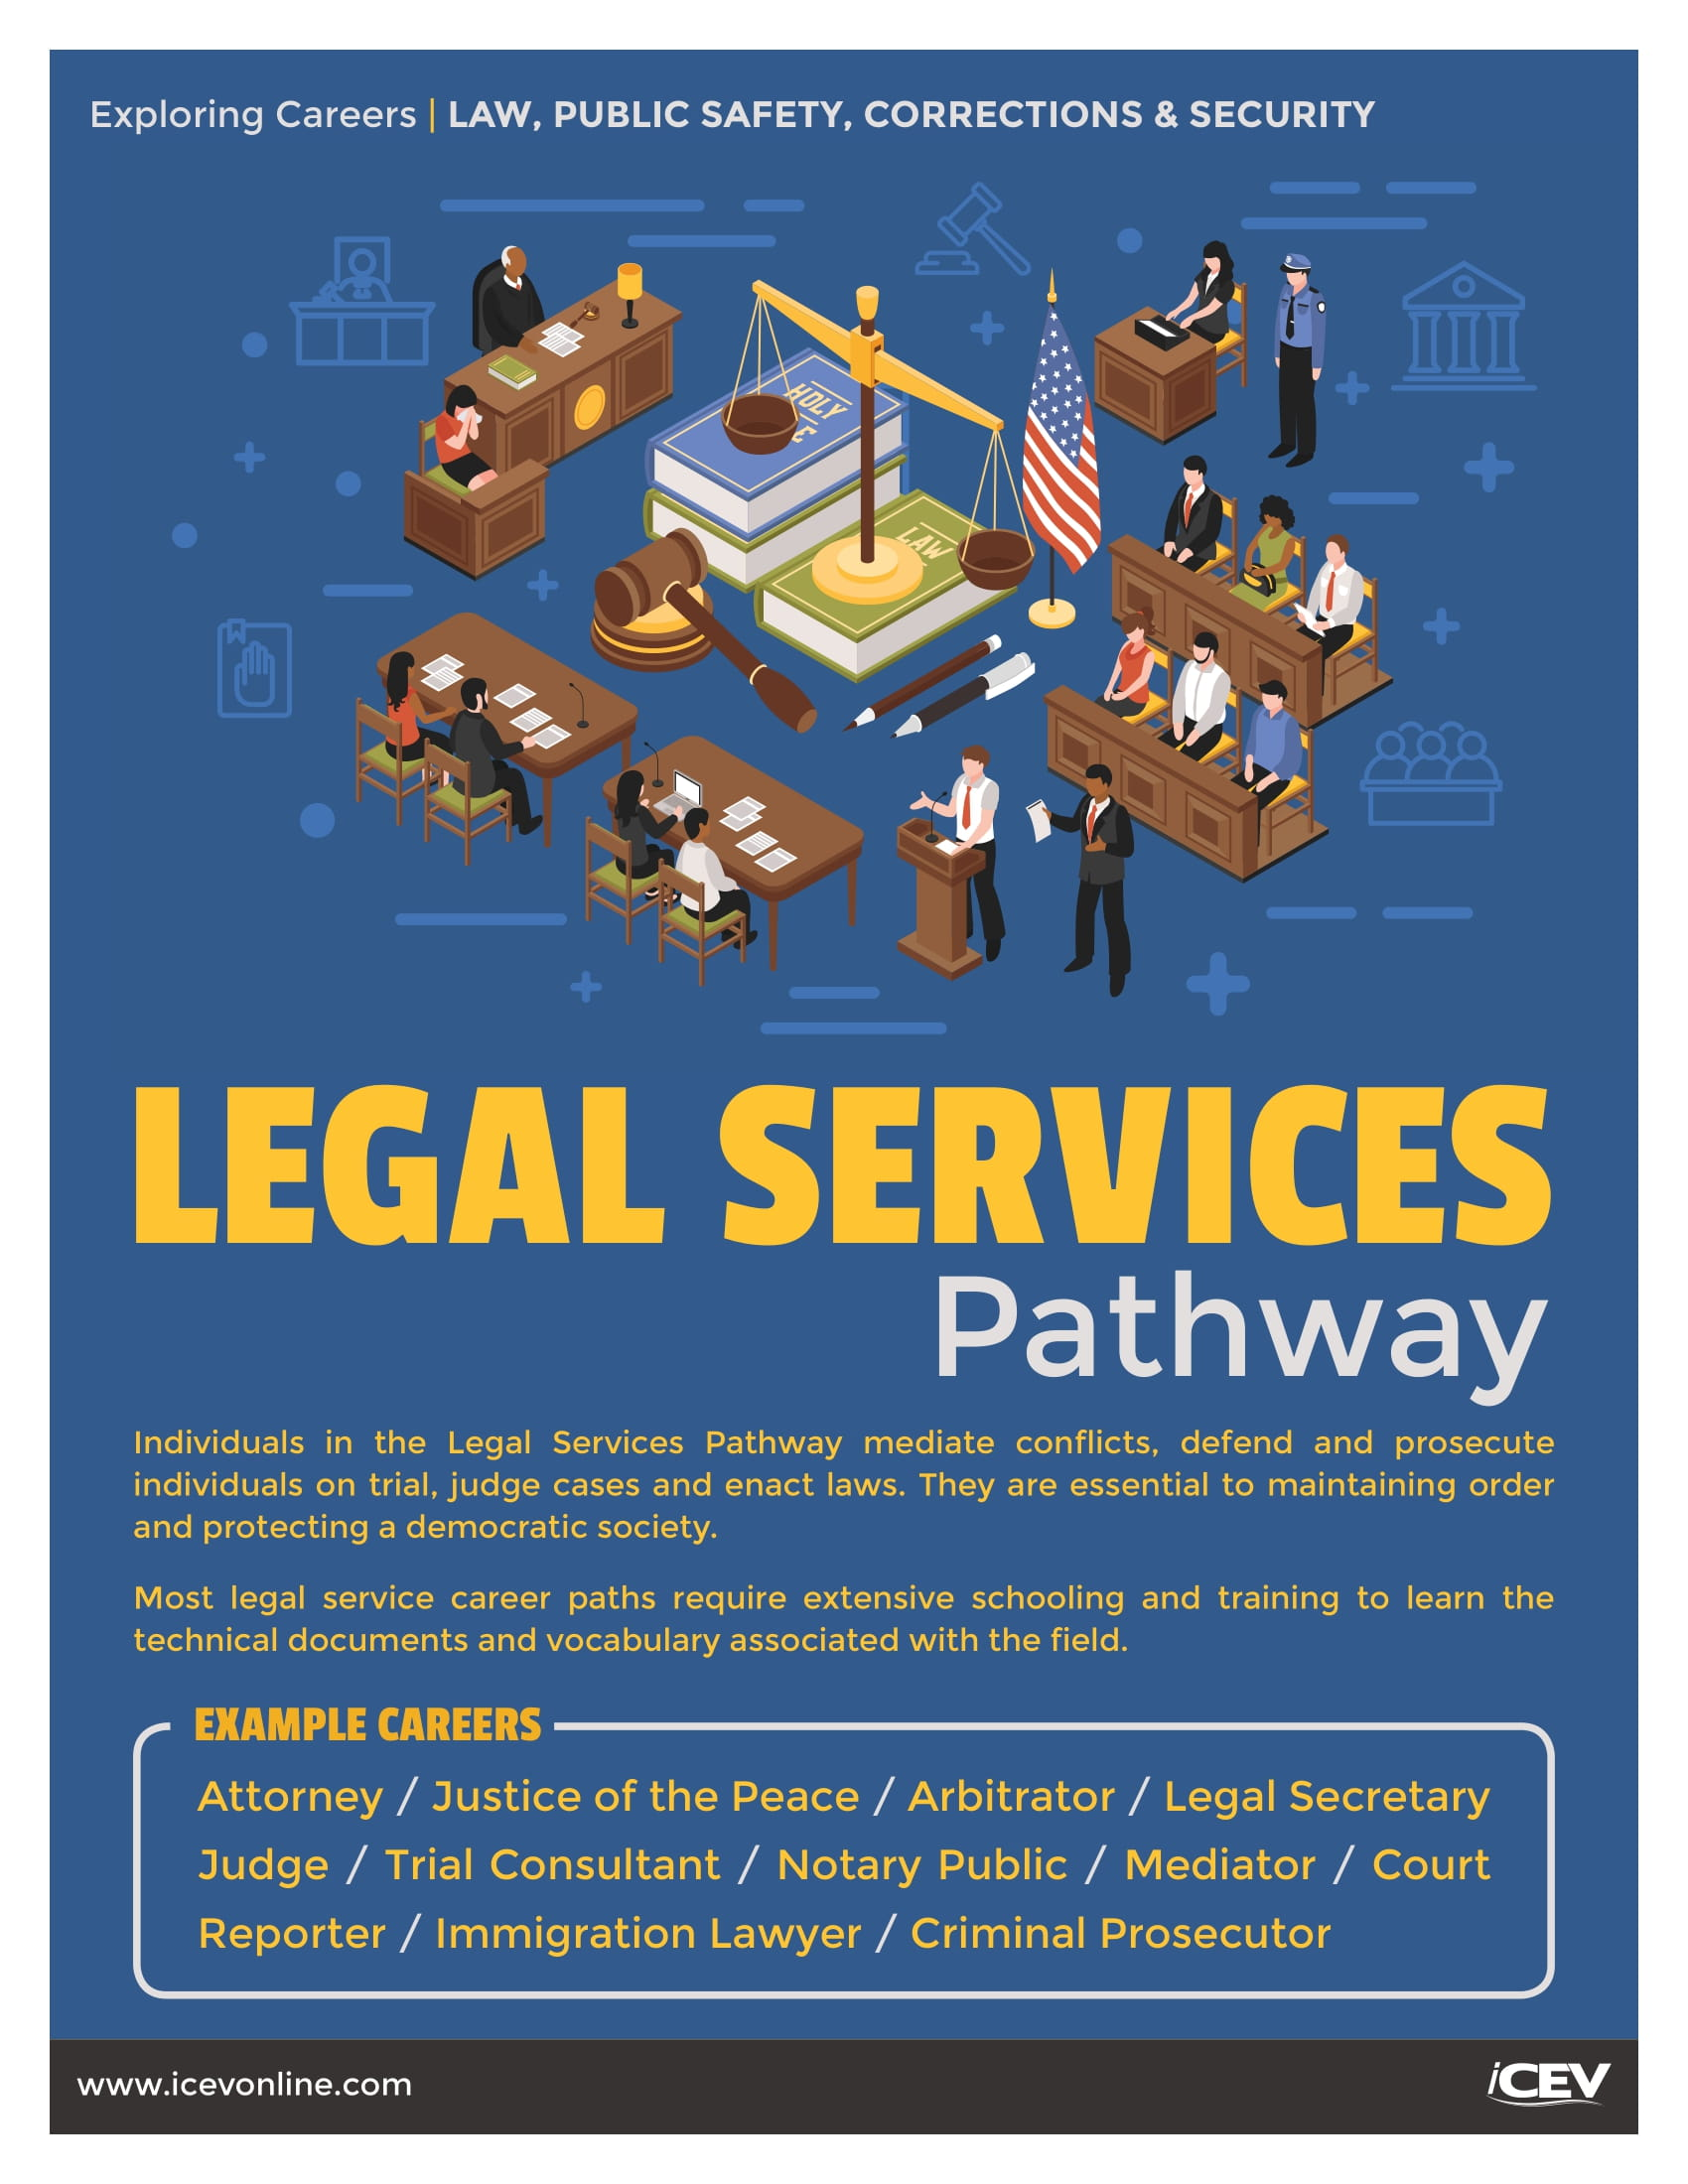 Law, Public Safety, Corrections & Security